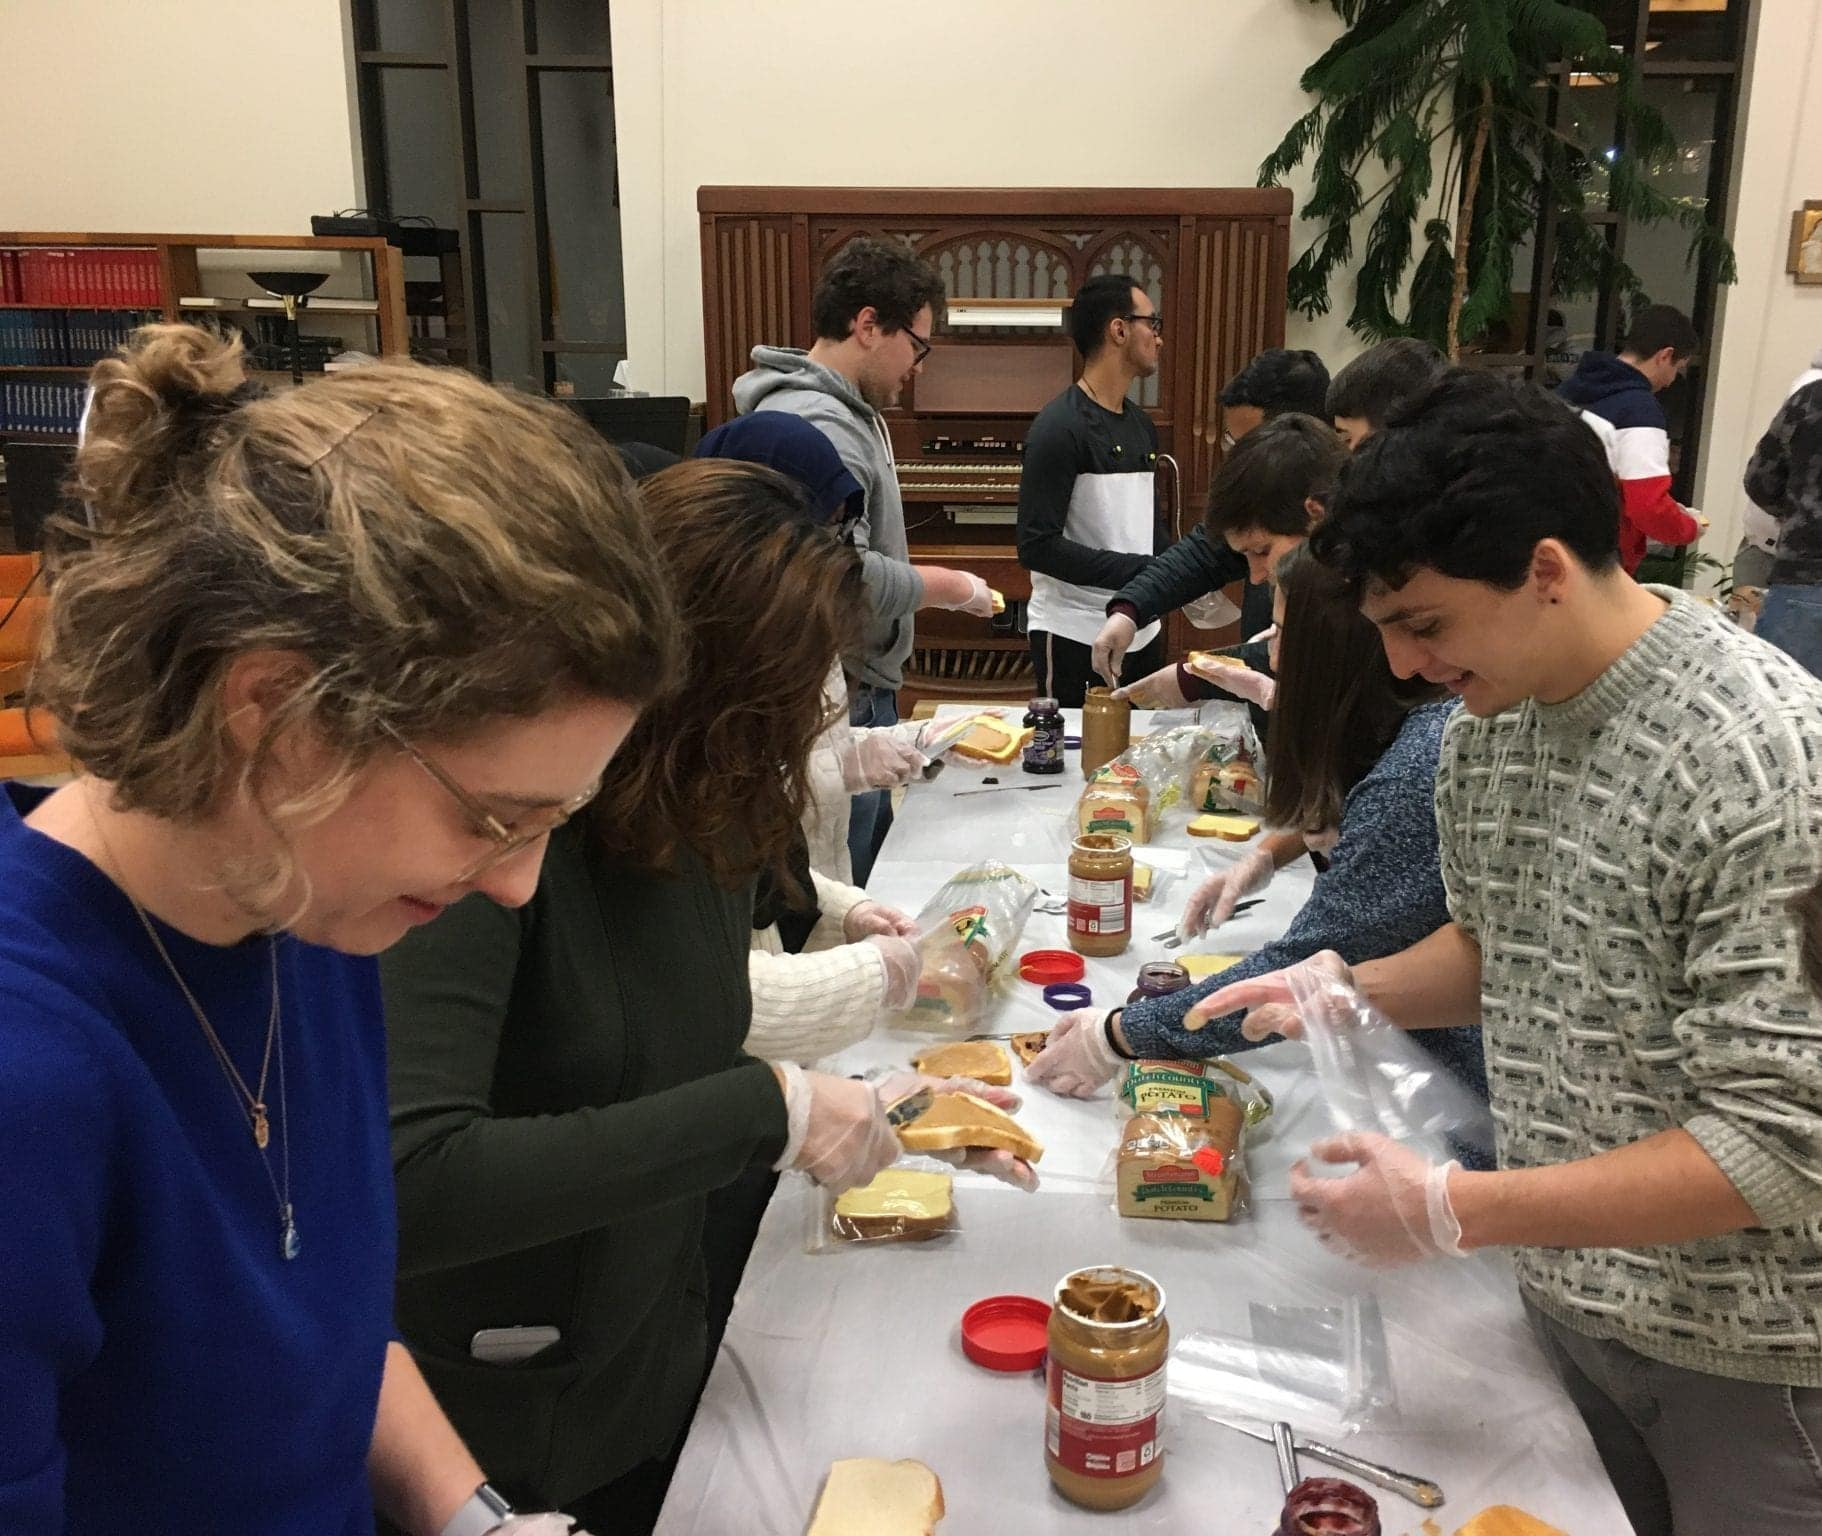 Students and faculty from different religious associations on campus came together to make PB&J and turkey sandwiches to donate to the poor at the Samaritan Center and Assumption Church Food Pantry